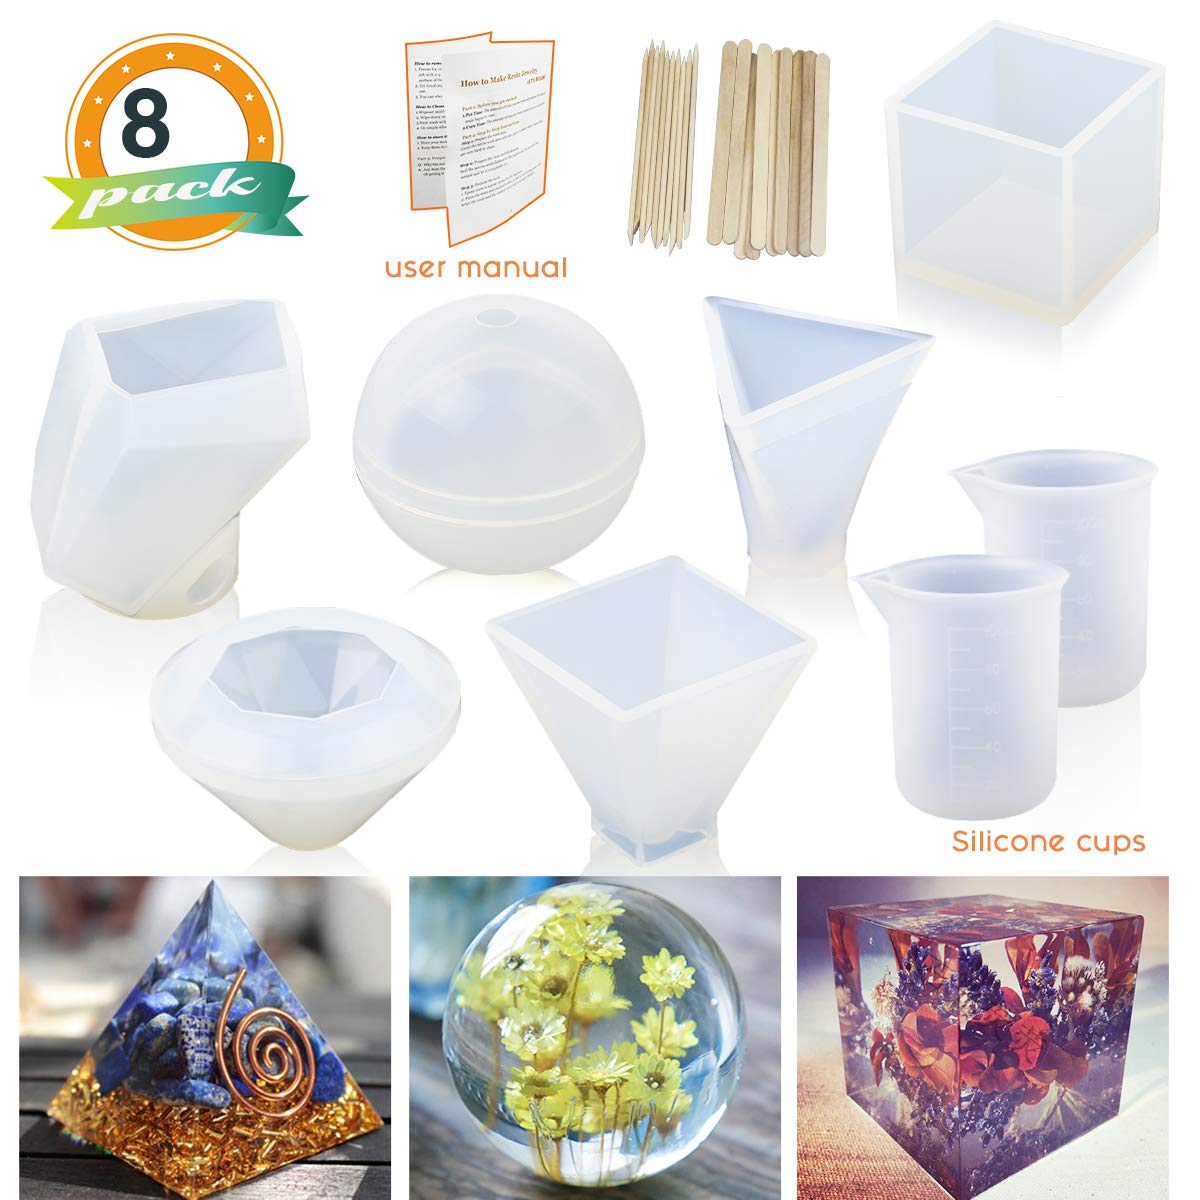 Square Pyramid Soap Silicone Resin Molds 5Pcs Resin Casting Molds Including Sphere Round with 1 Measuring Cup /& 5 Plastic Transfer Pipettes for Resin Epoxy Bowl Mat etc Candle Wax Cube